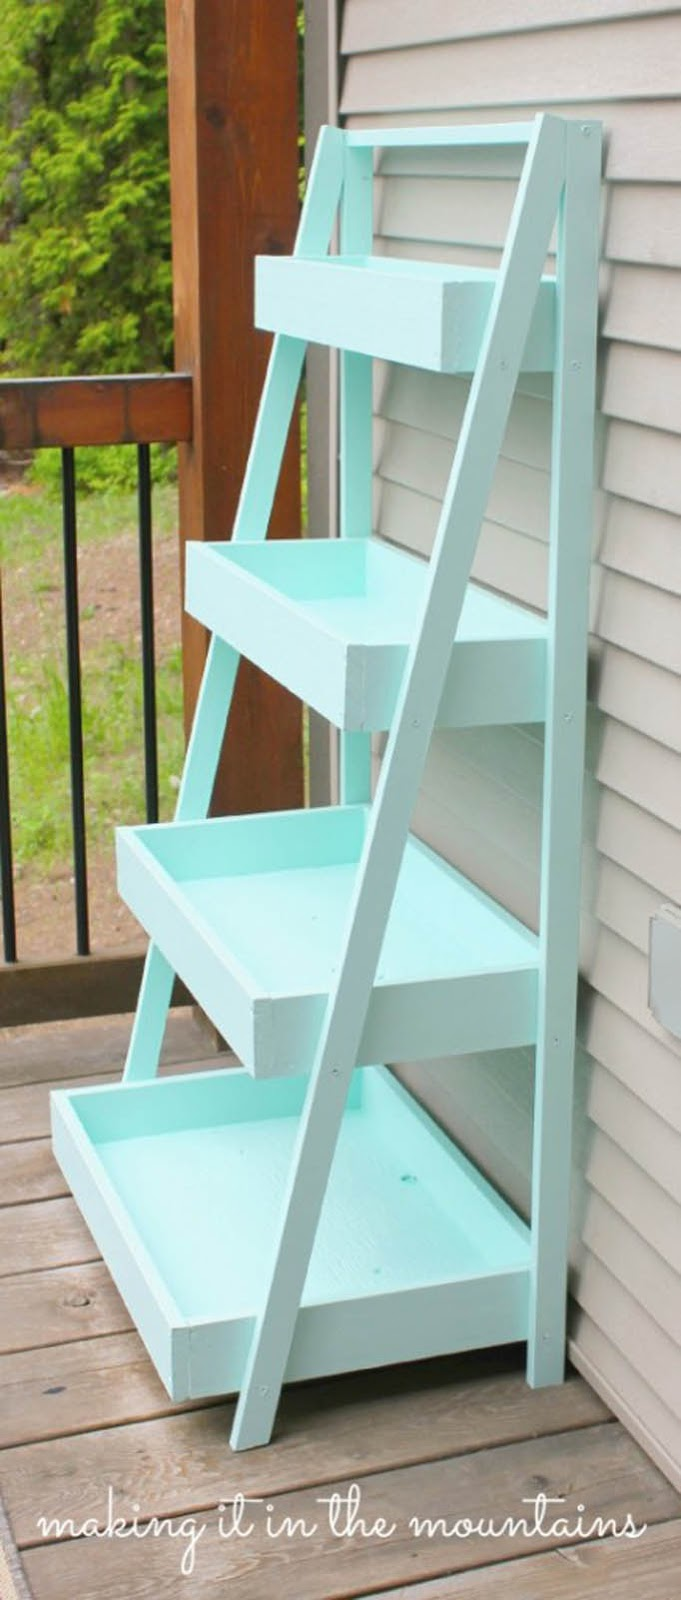 diy-estanteria-escalera-mint-decoracion-terraza